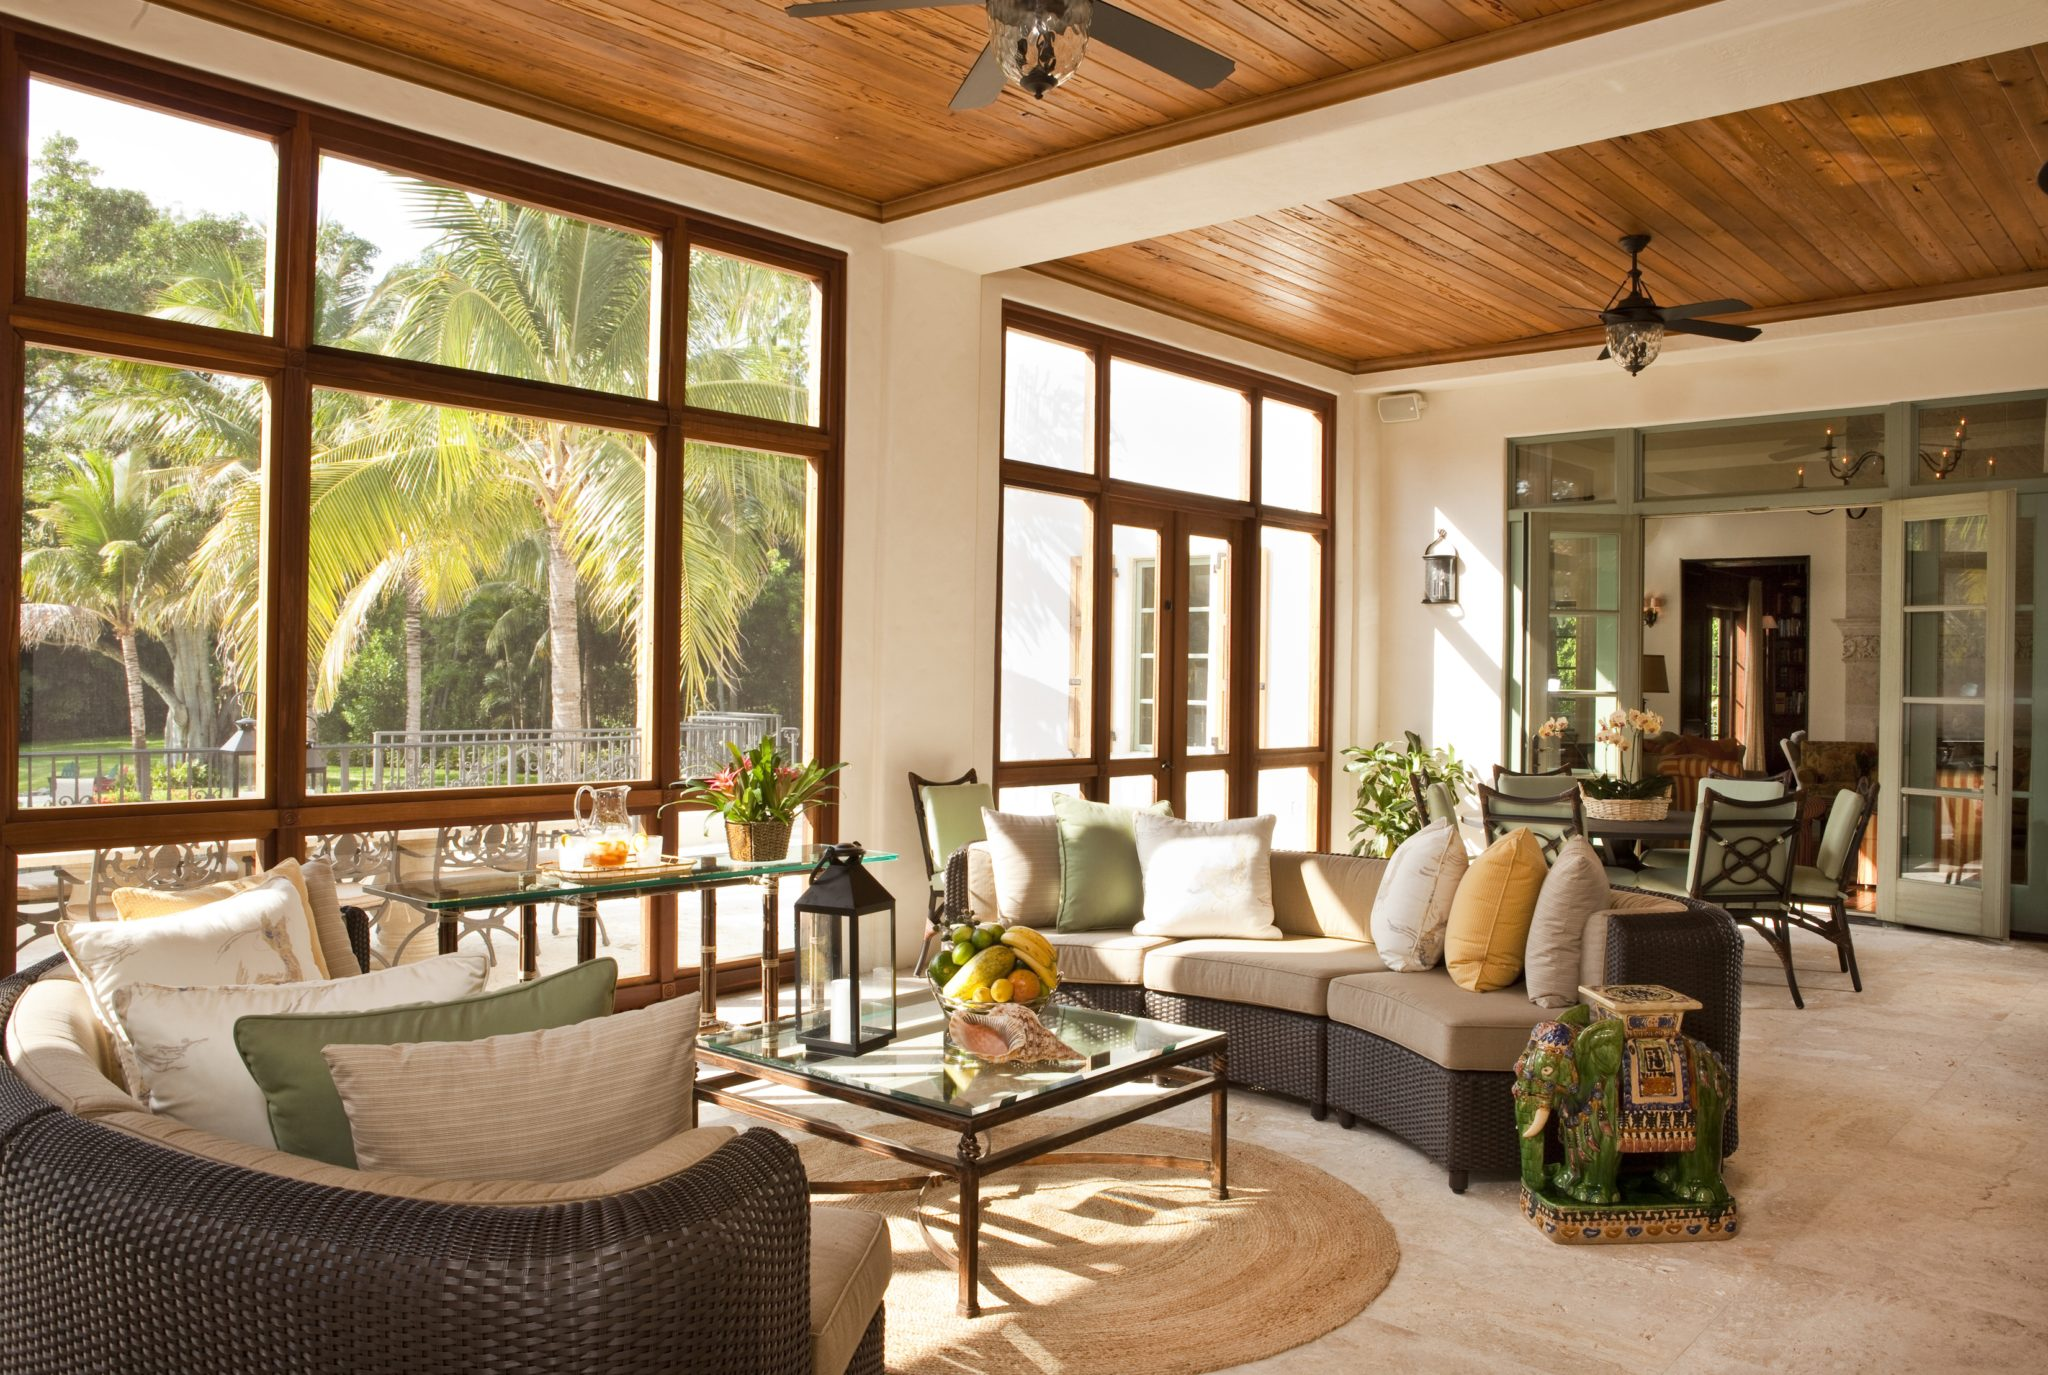 A screened-in, outdoor living room with apecky cypress ceiling that adds an undeniably tropical feel.By Taylor & Taylor